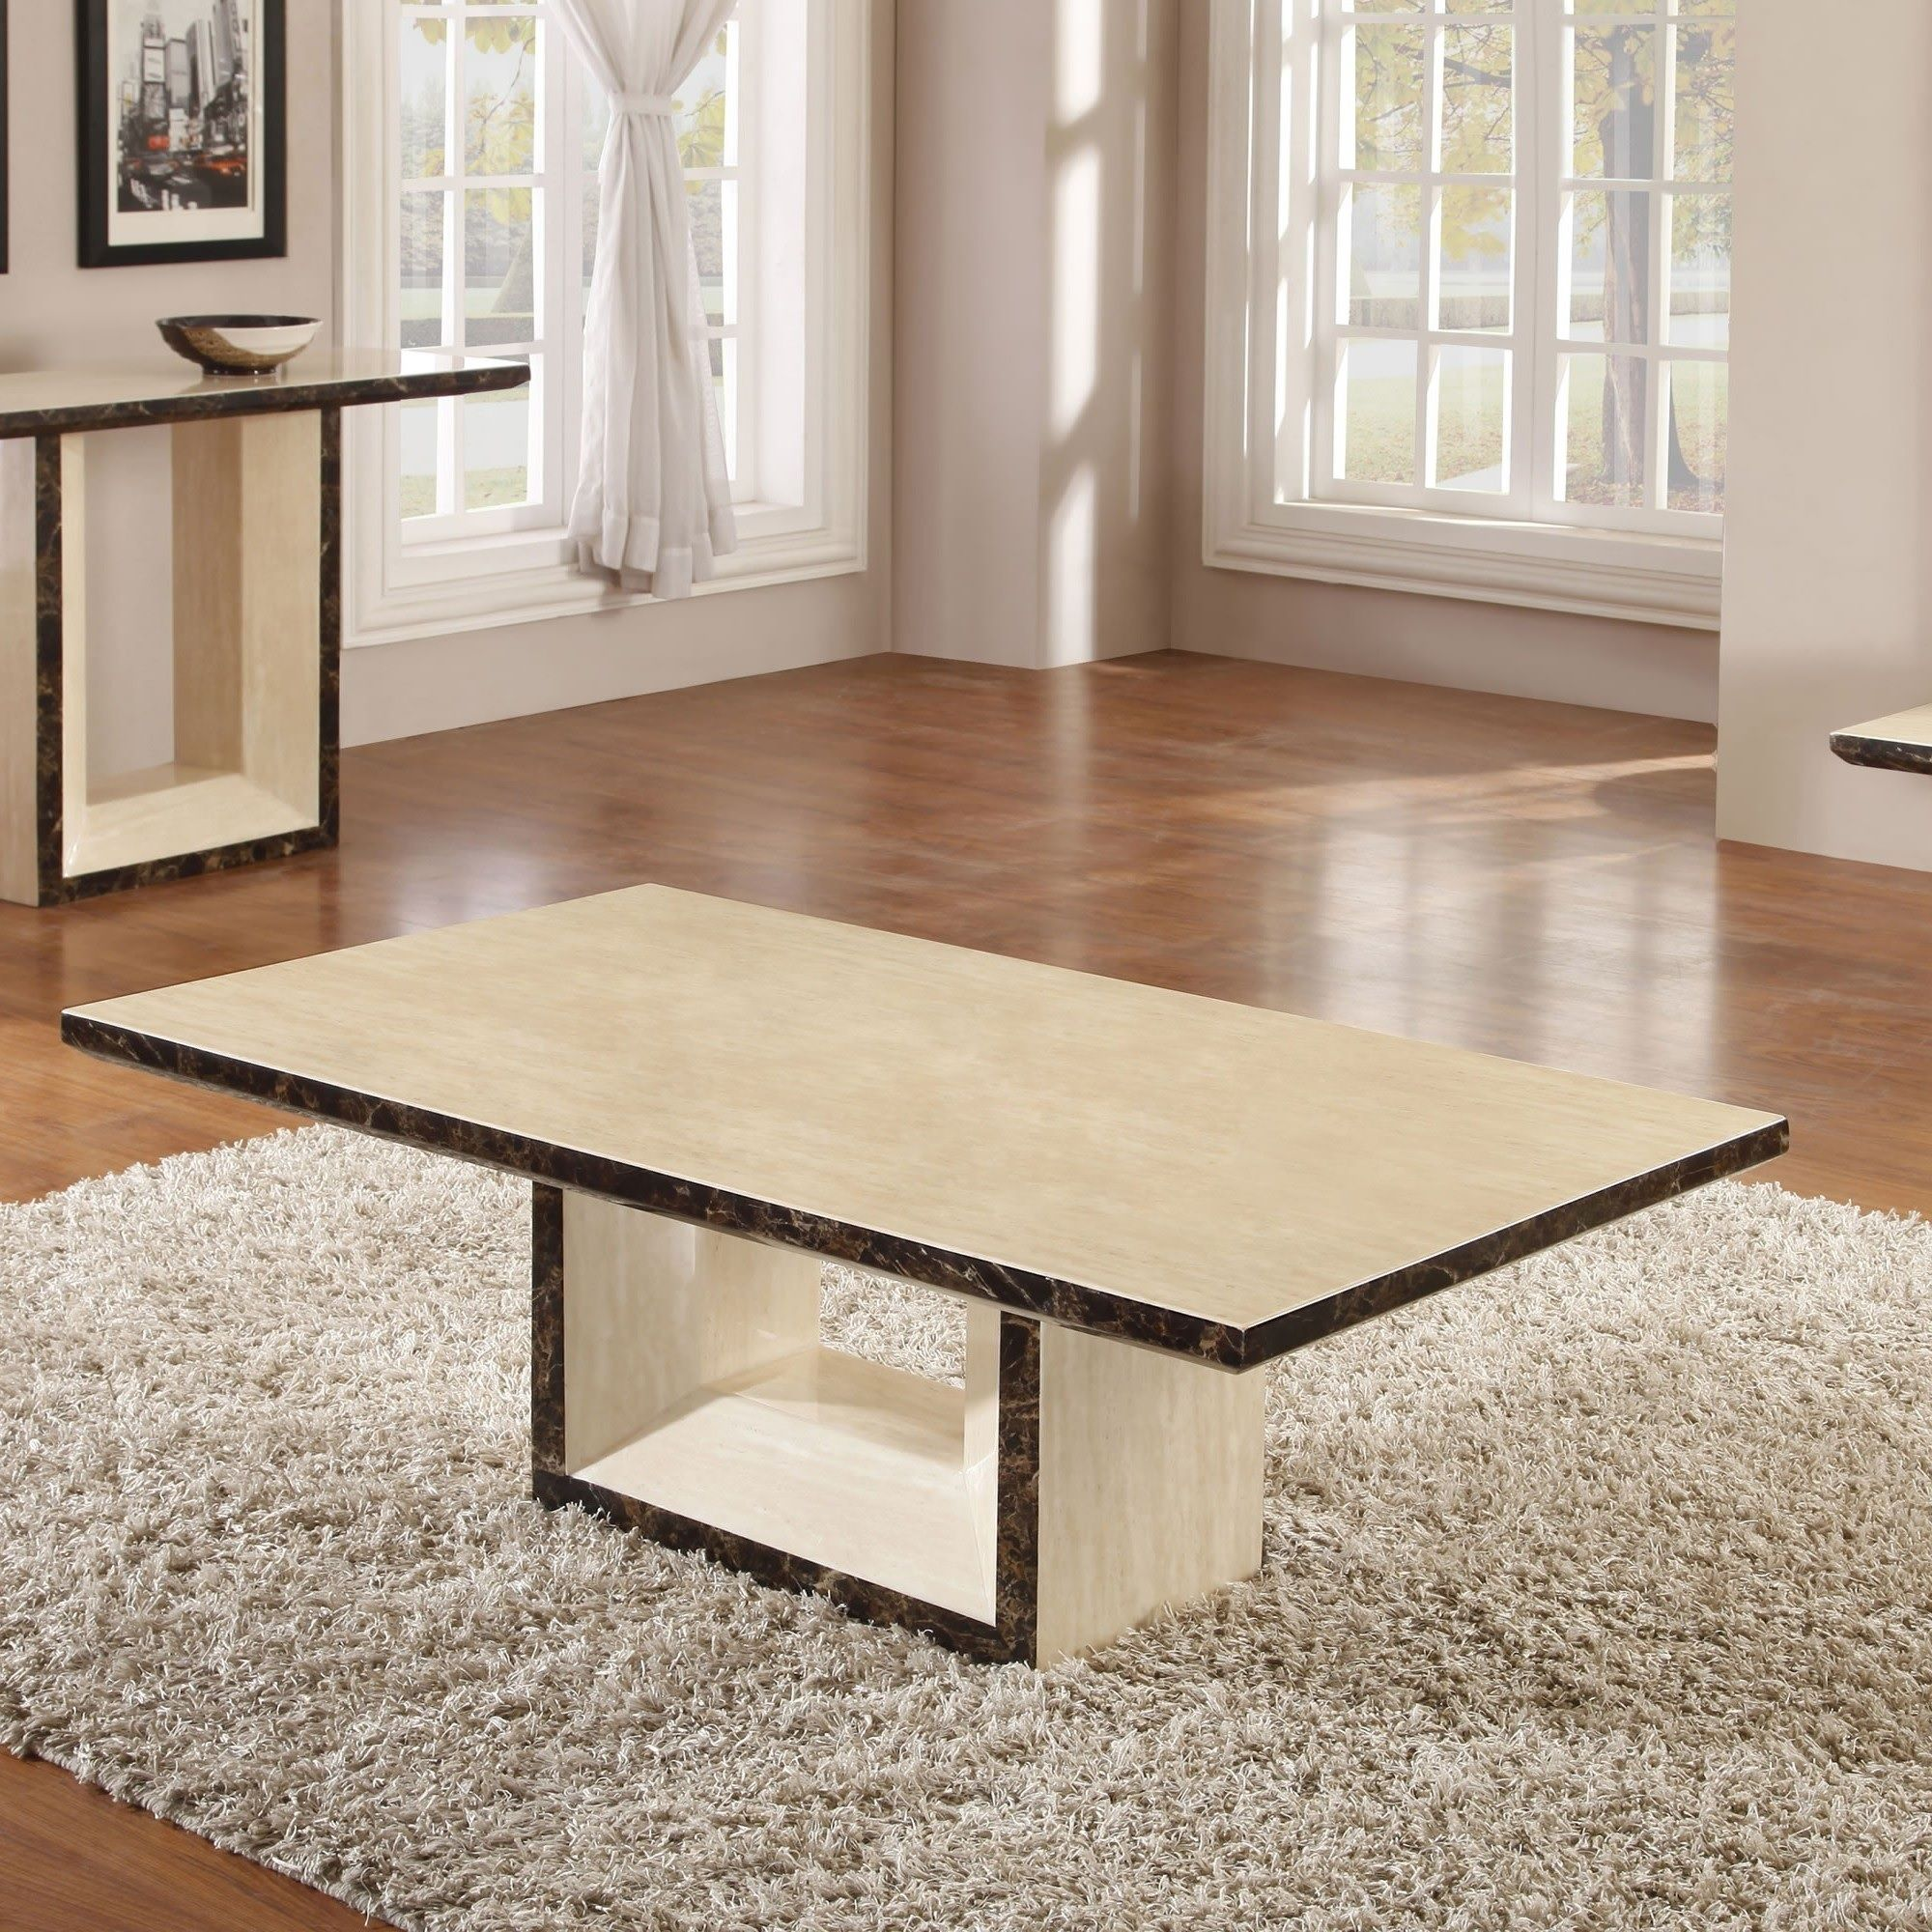 perfect chairs coffee room fresh elm for tjihome marvelous from west tables granite table sale dining of set and appealing